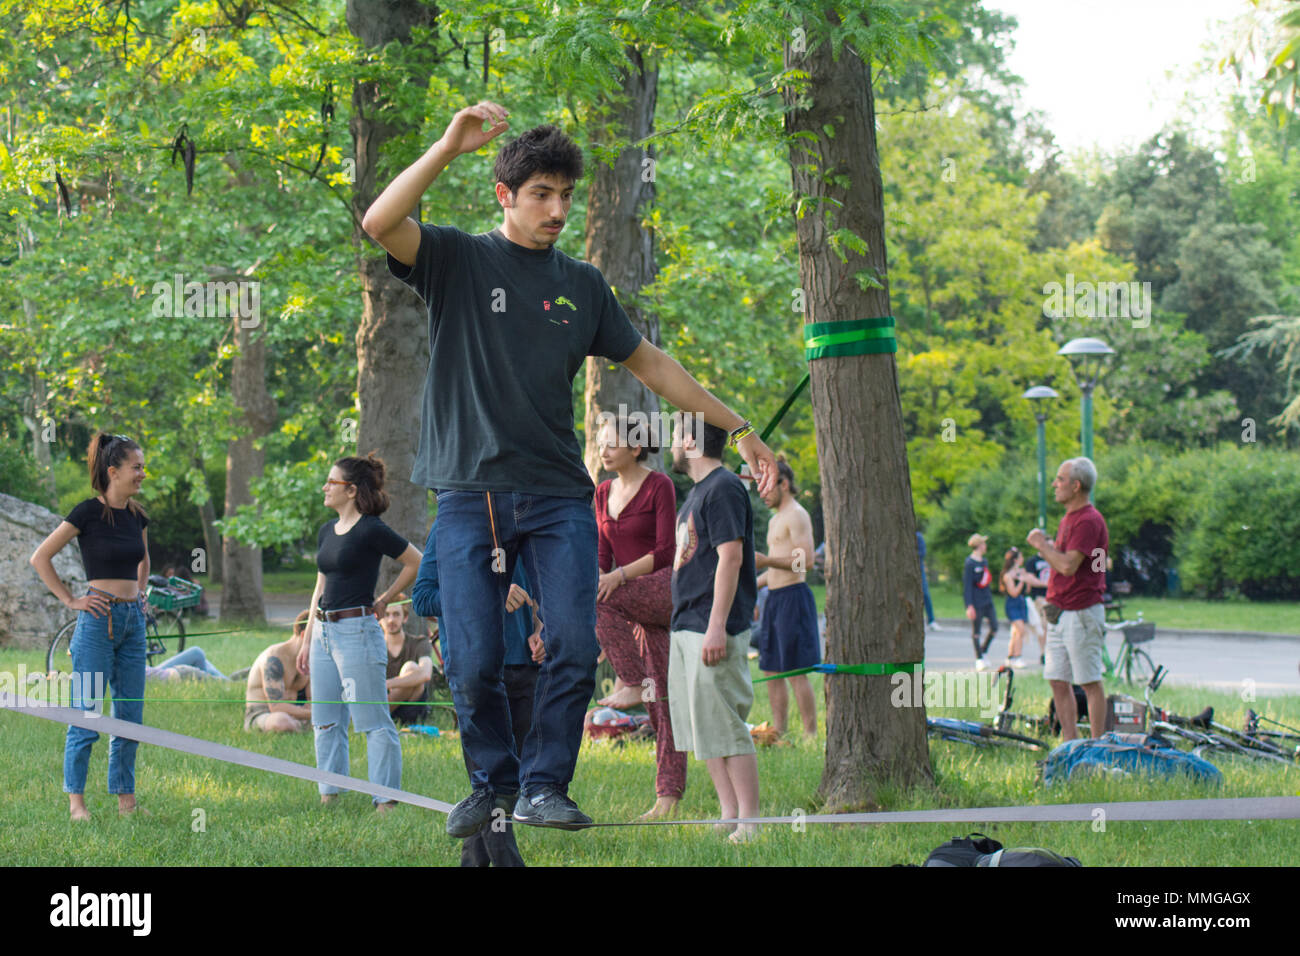 front view of a black haired young man on the slackline, slacklining - Stock Image